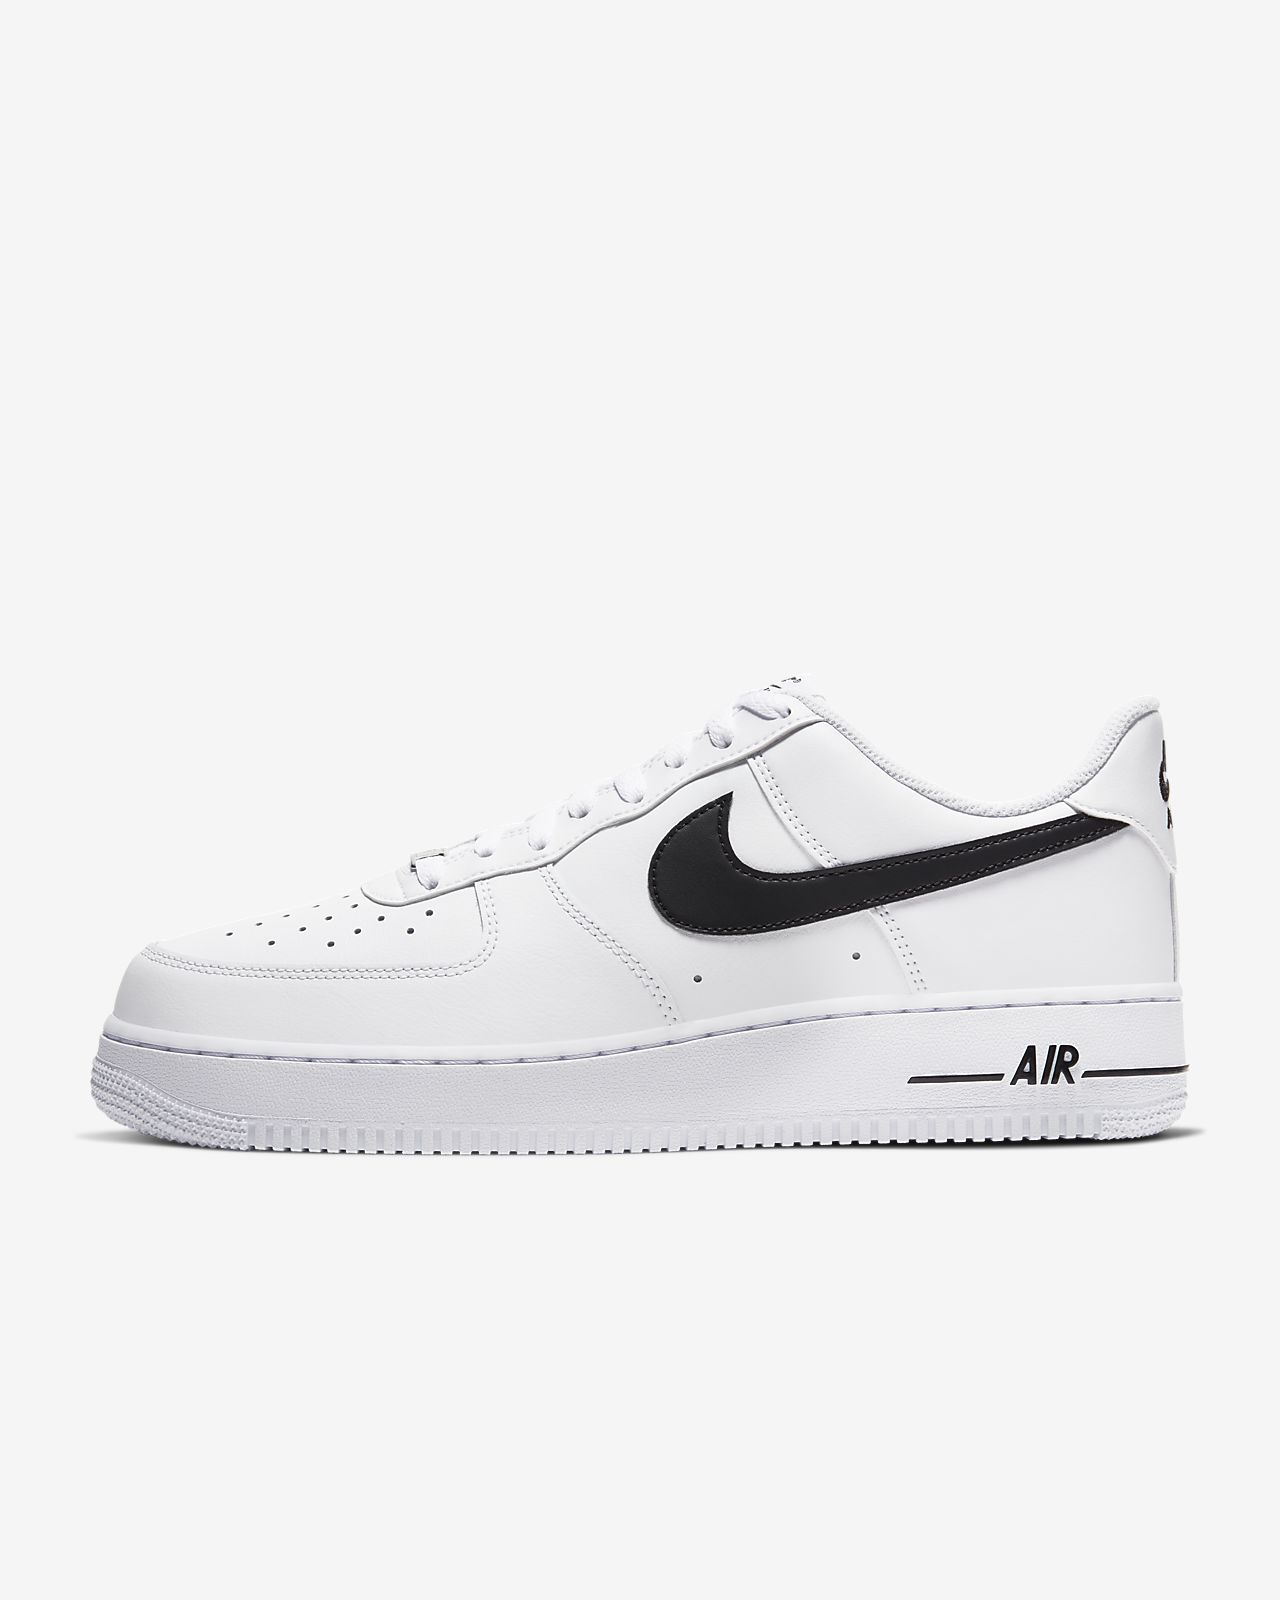 Nike Air Force 1 'Puerto Rico' | Nike air, Nike air force